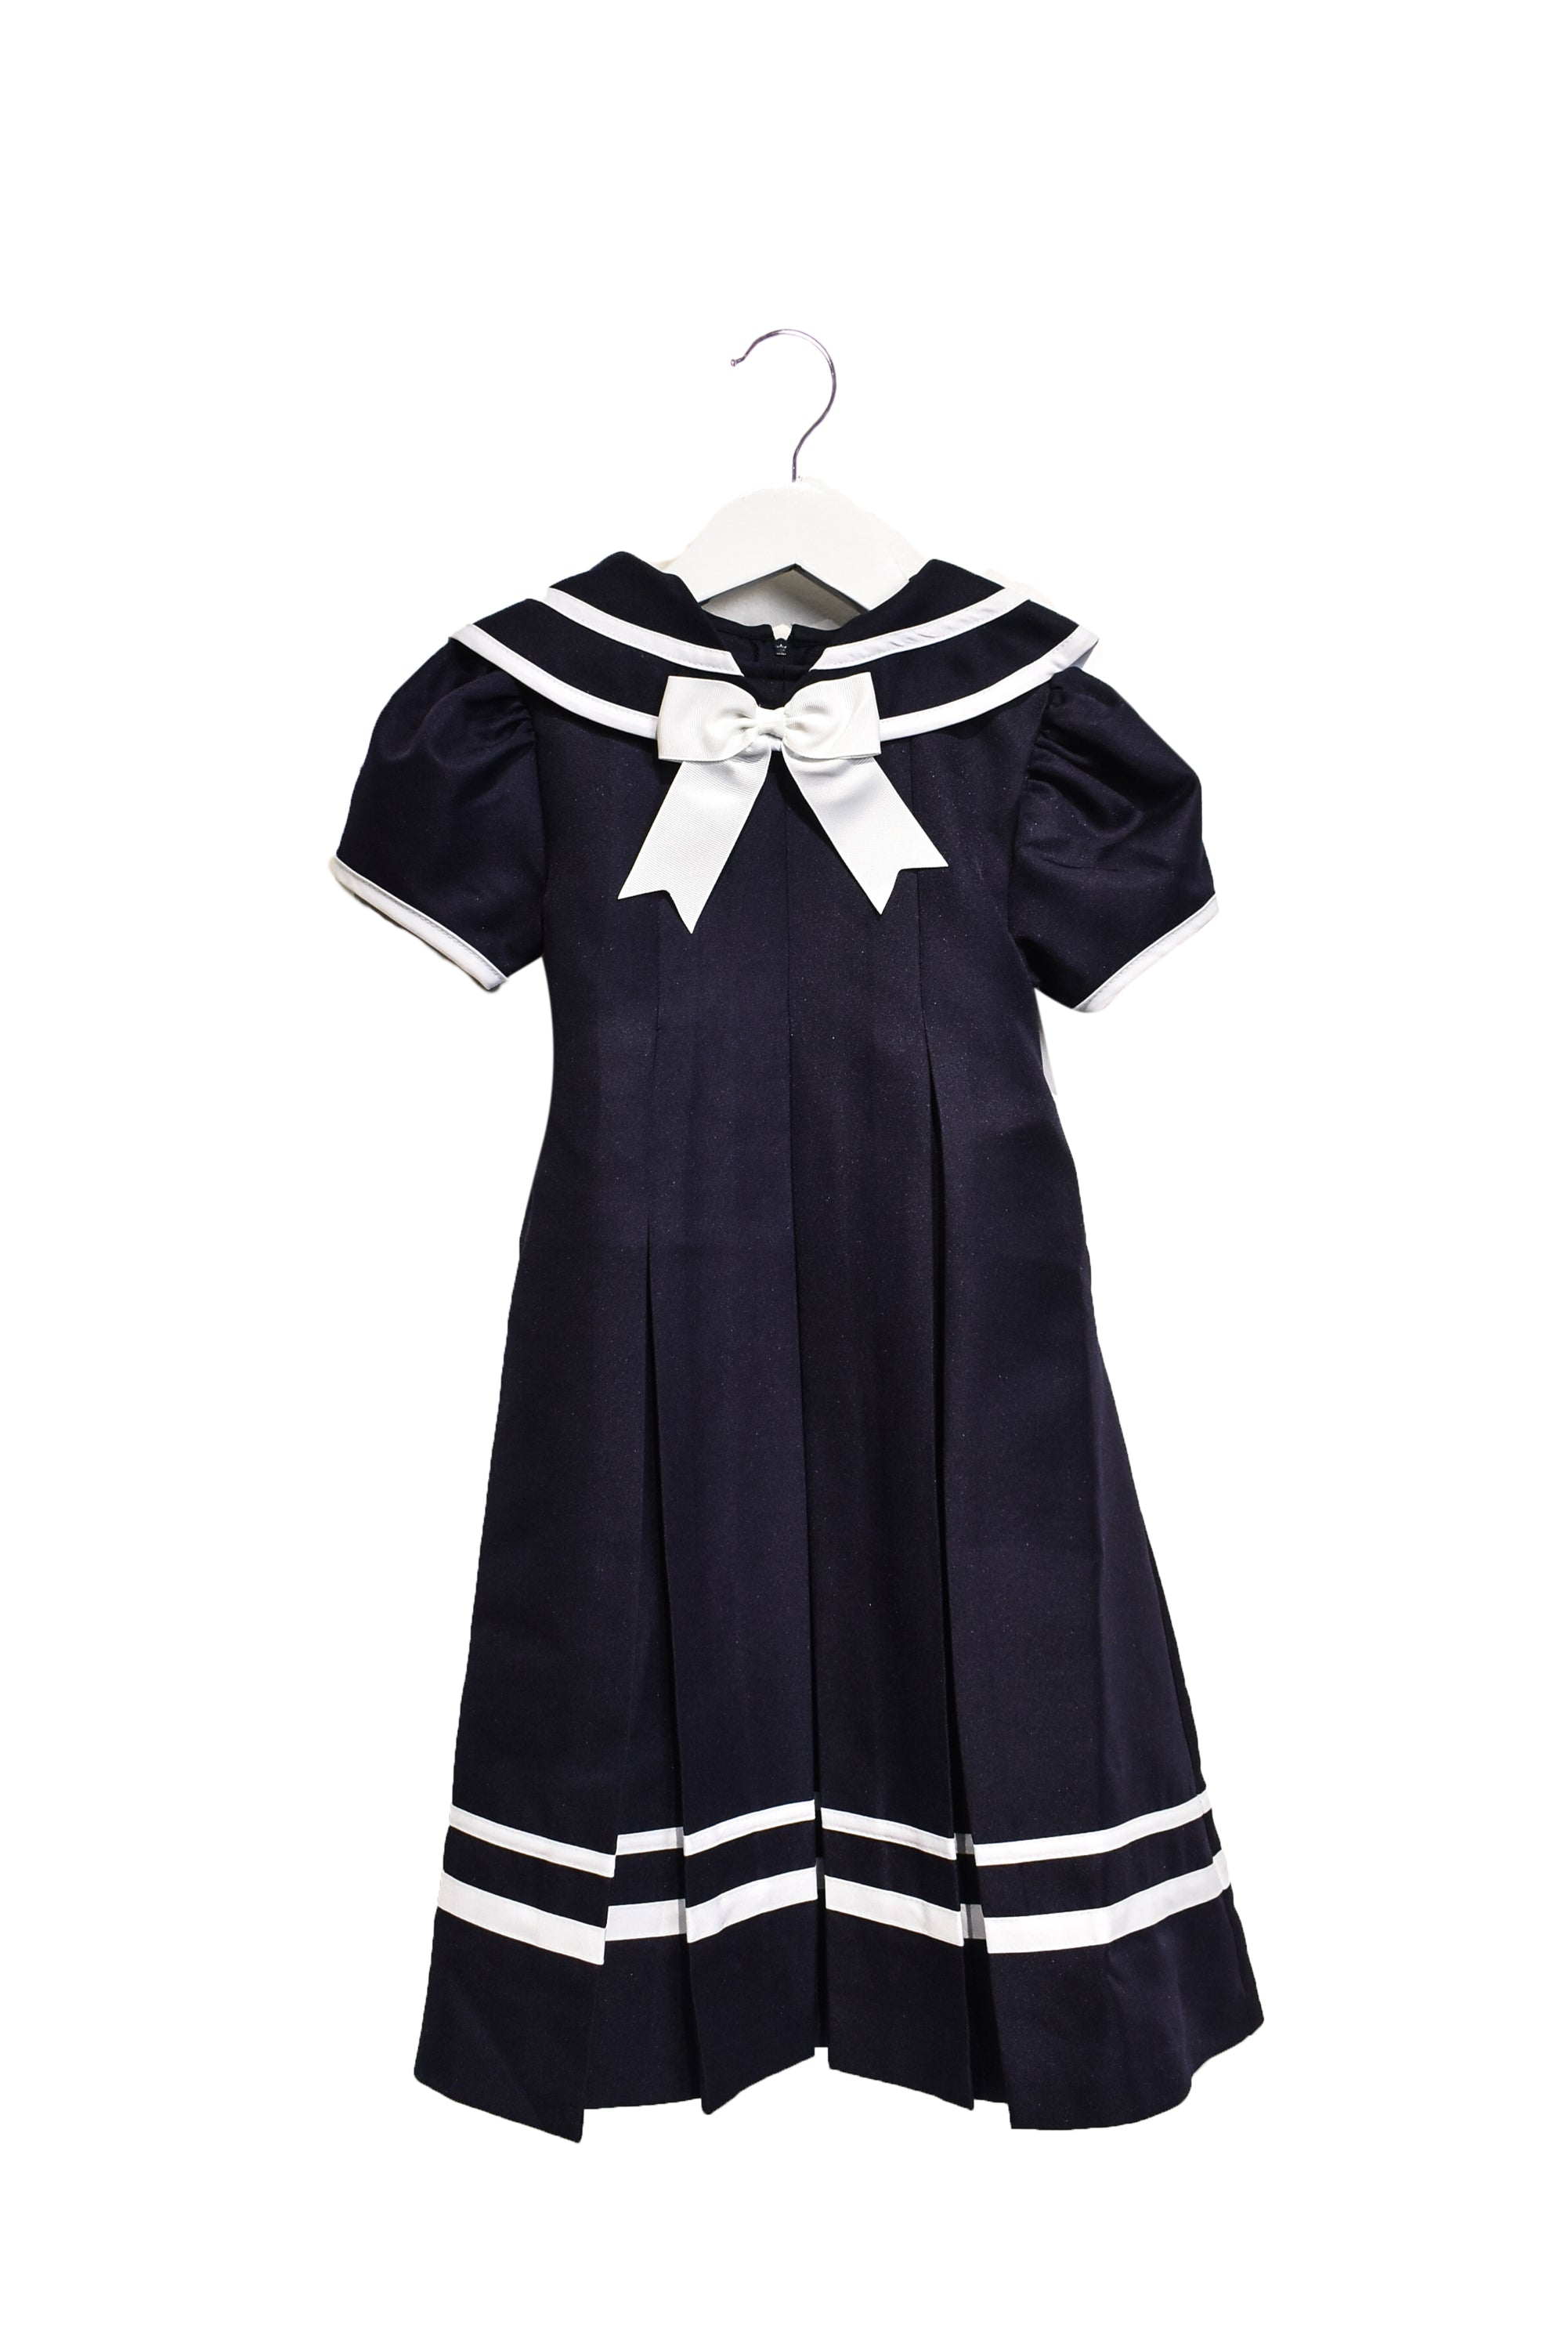 10017218 Rare Editions Kids~Dress 4T at Retykle